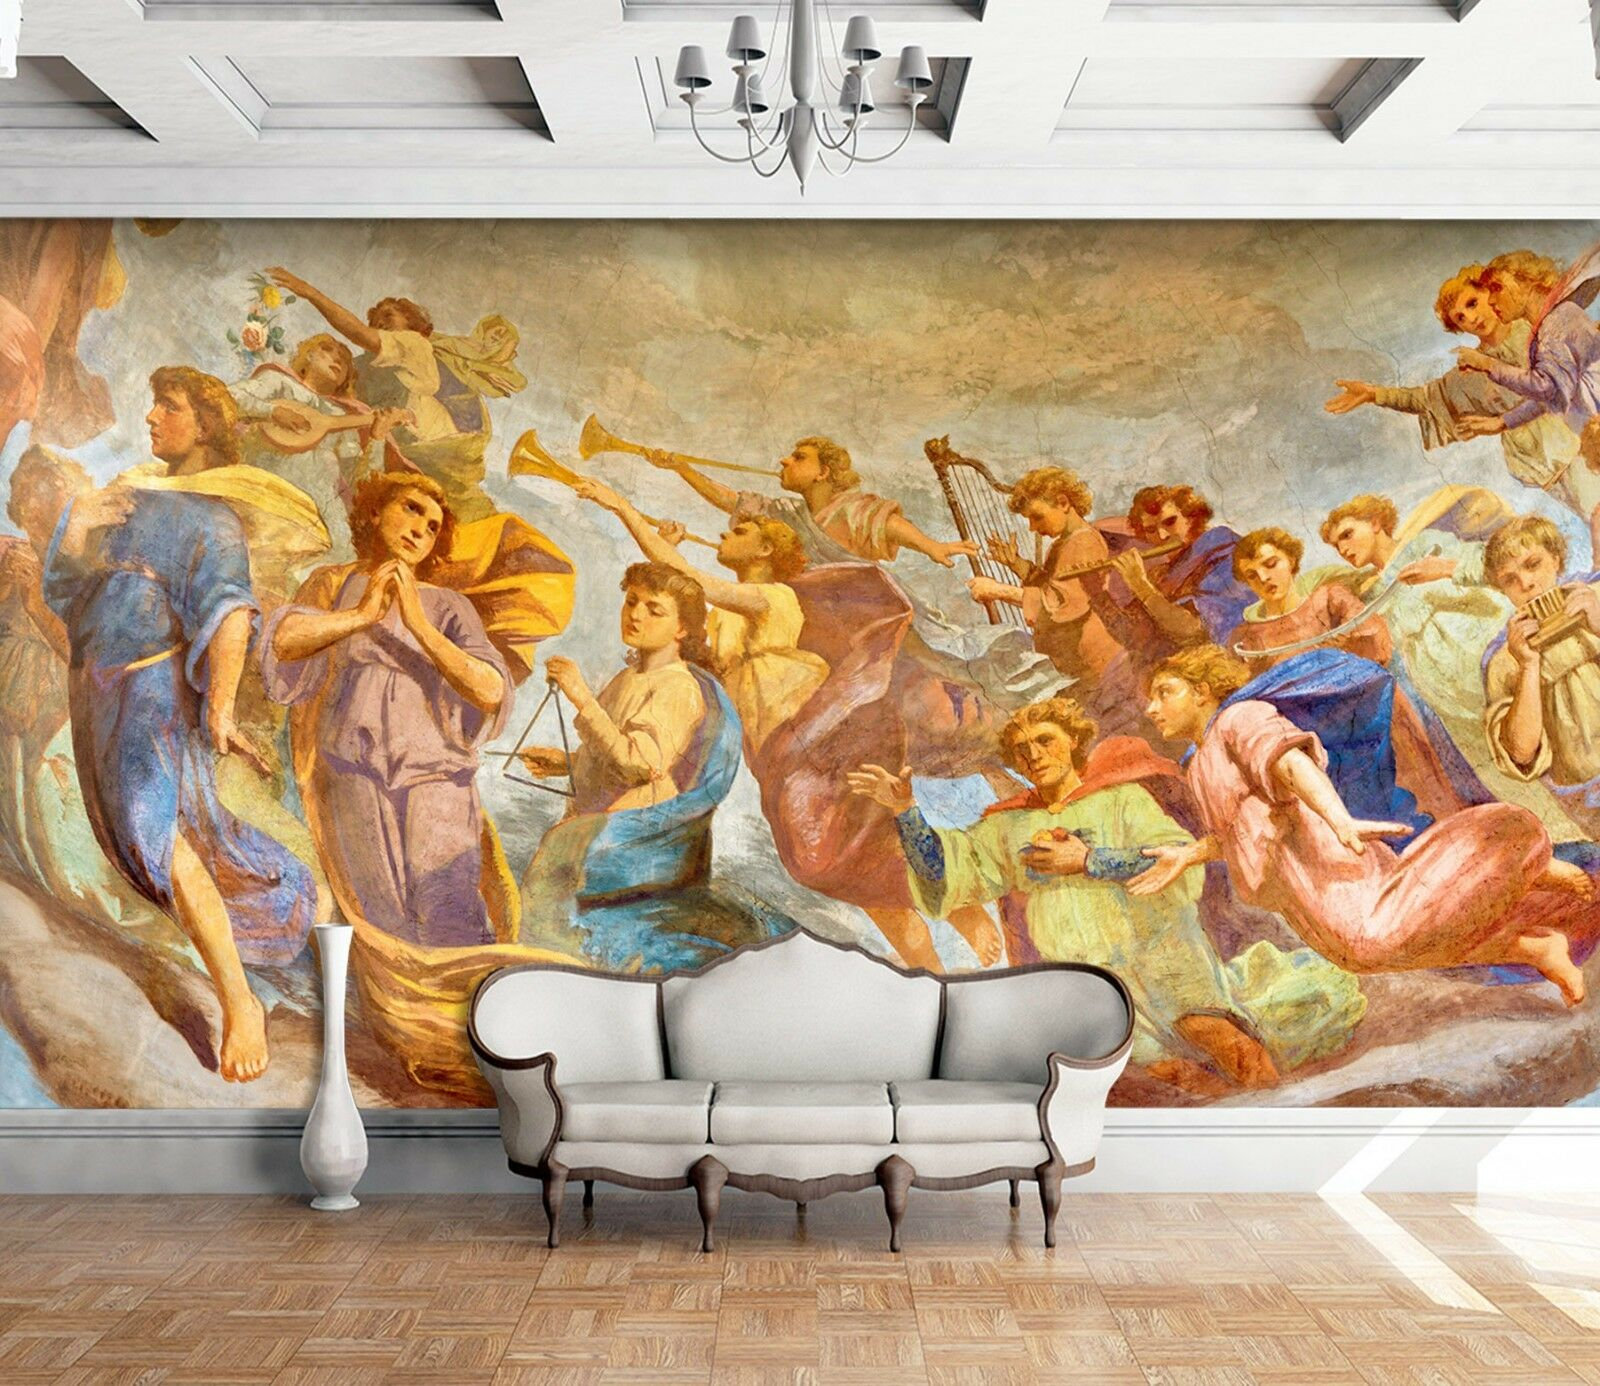 3D Classical Figure Paint 4 Wall Paper wall Print Decal Wall Deco Indoor Mural